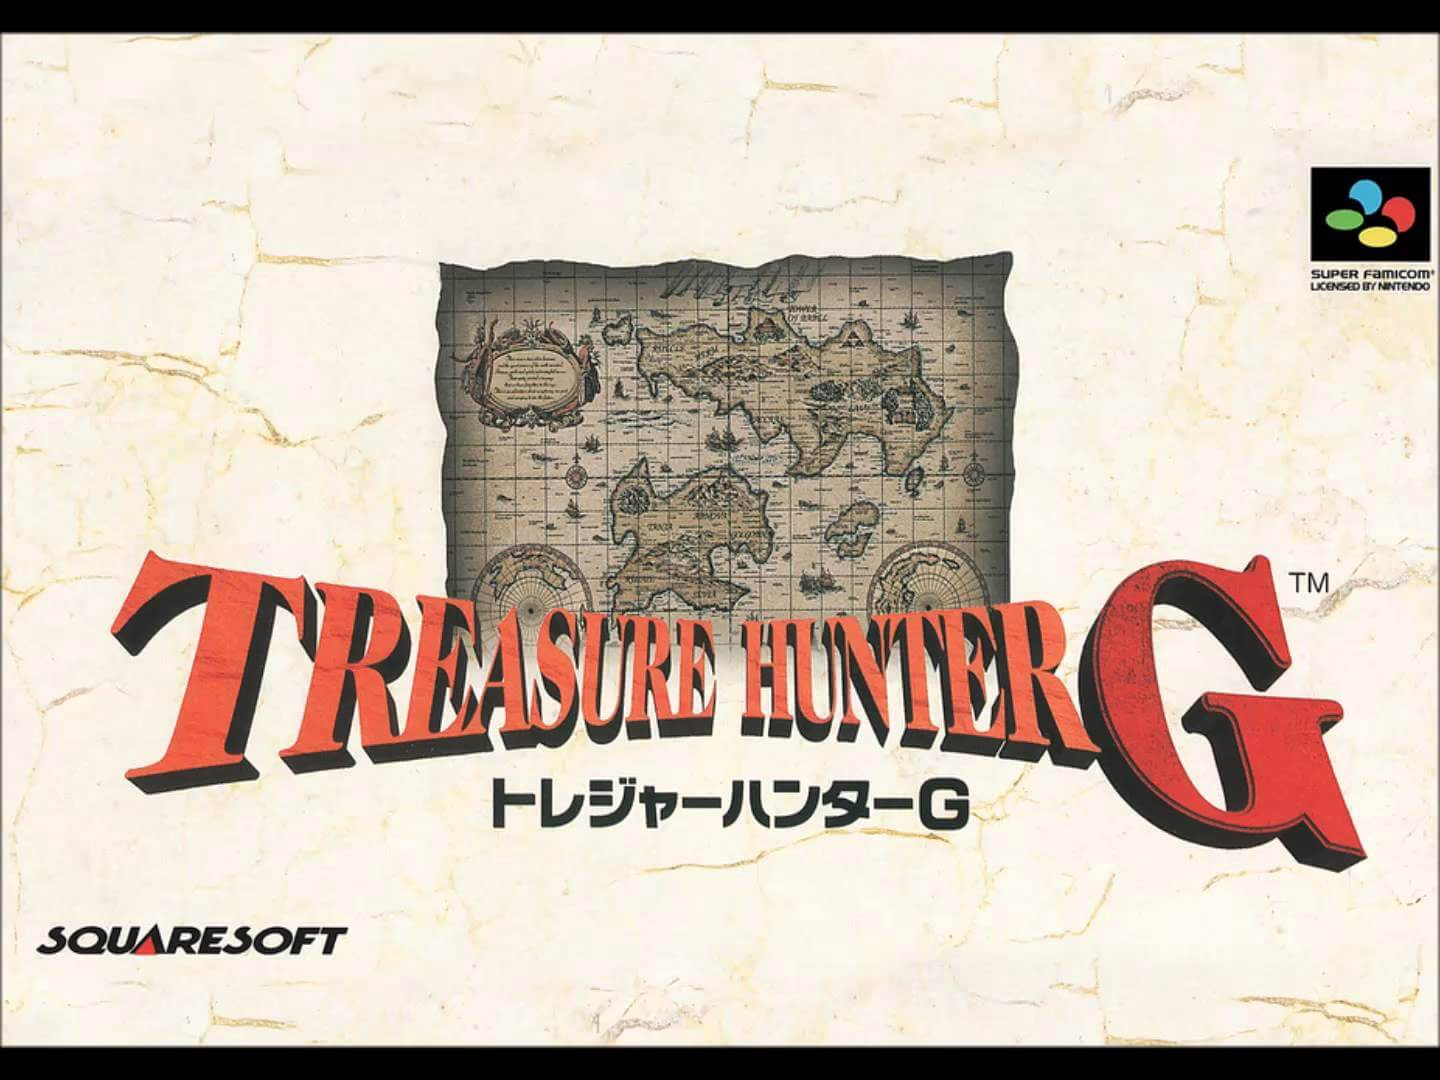 Treasure Hunter G Japan Only Video Games